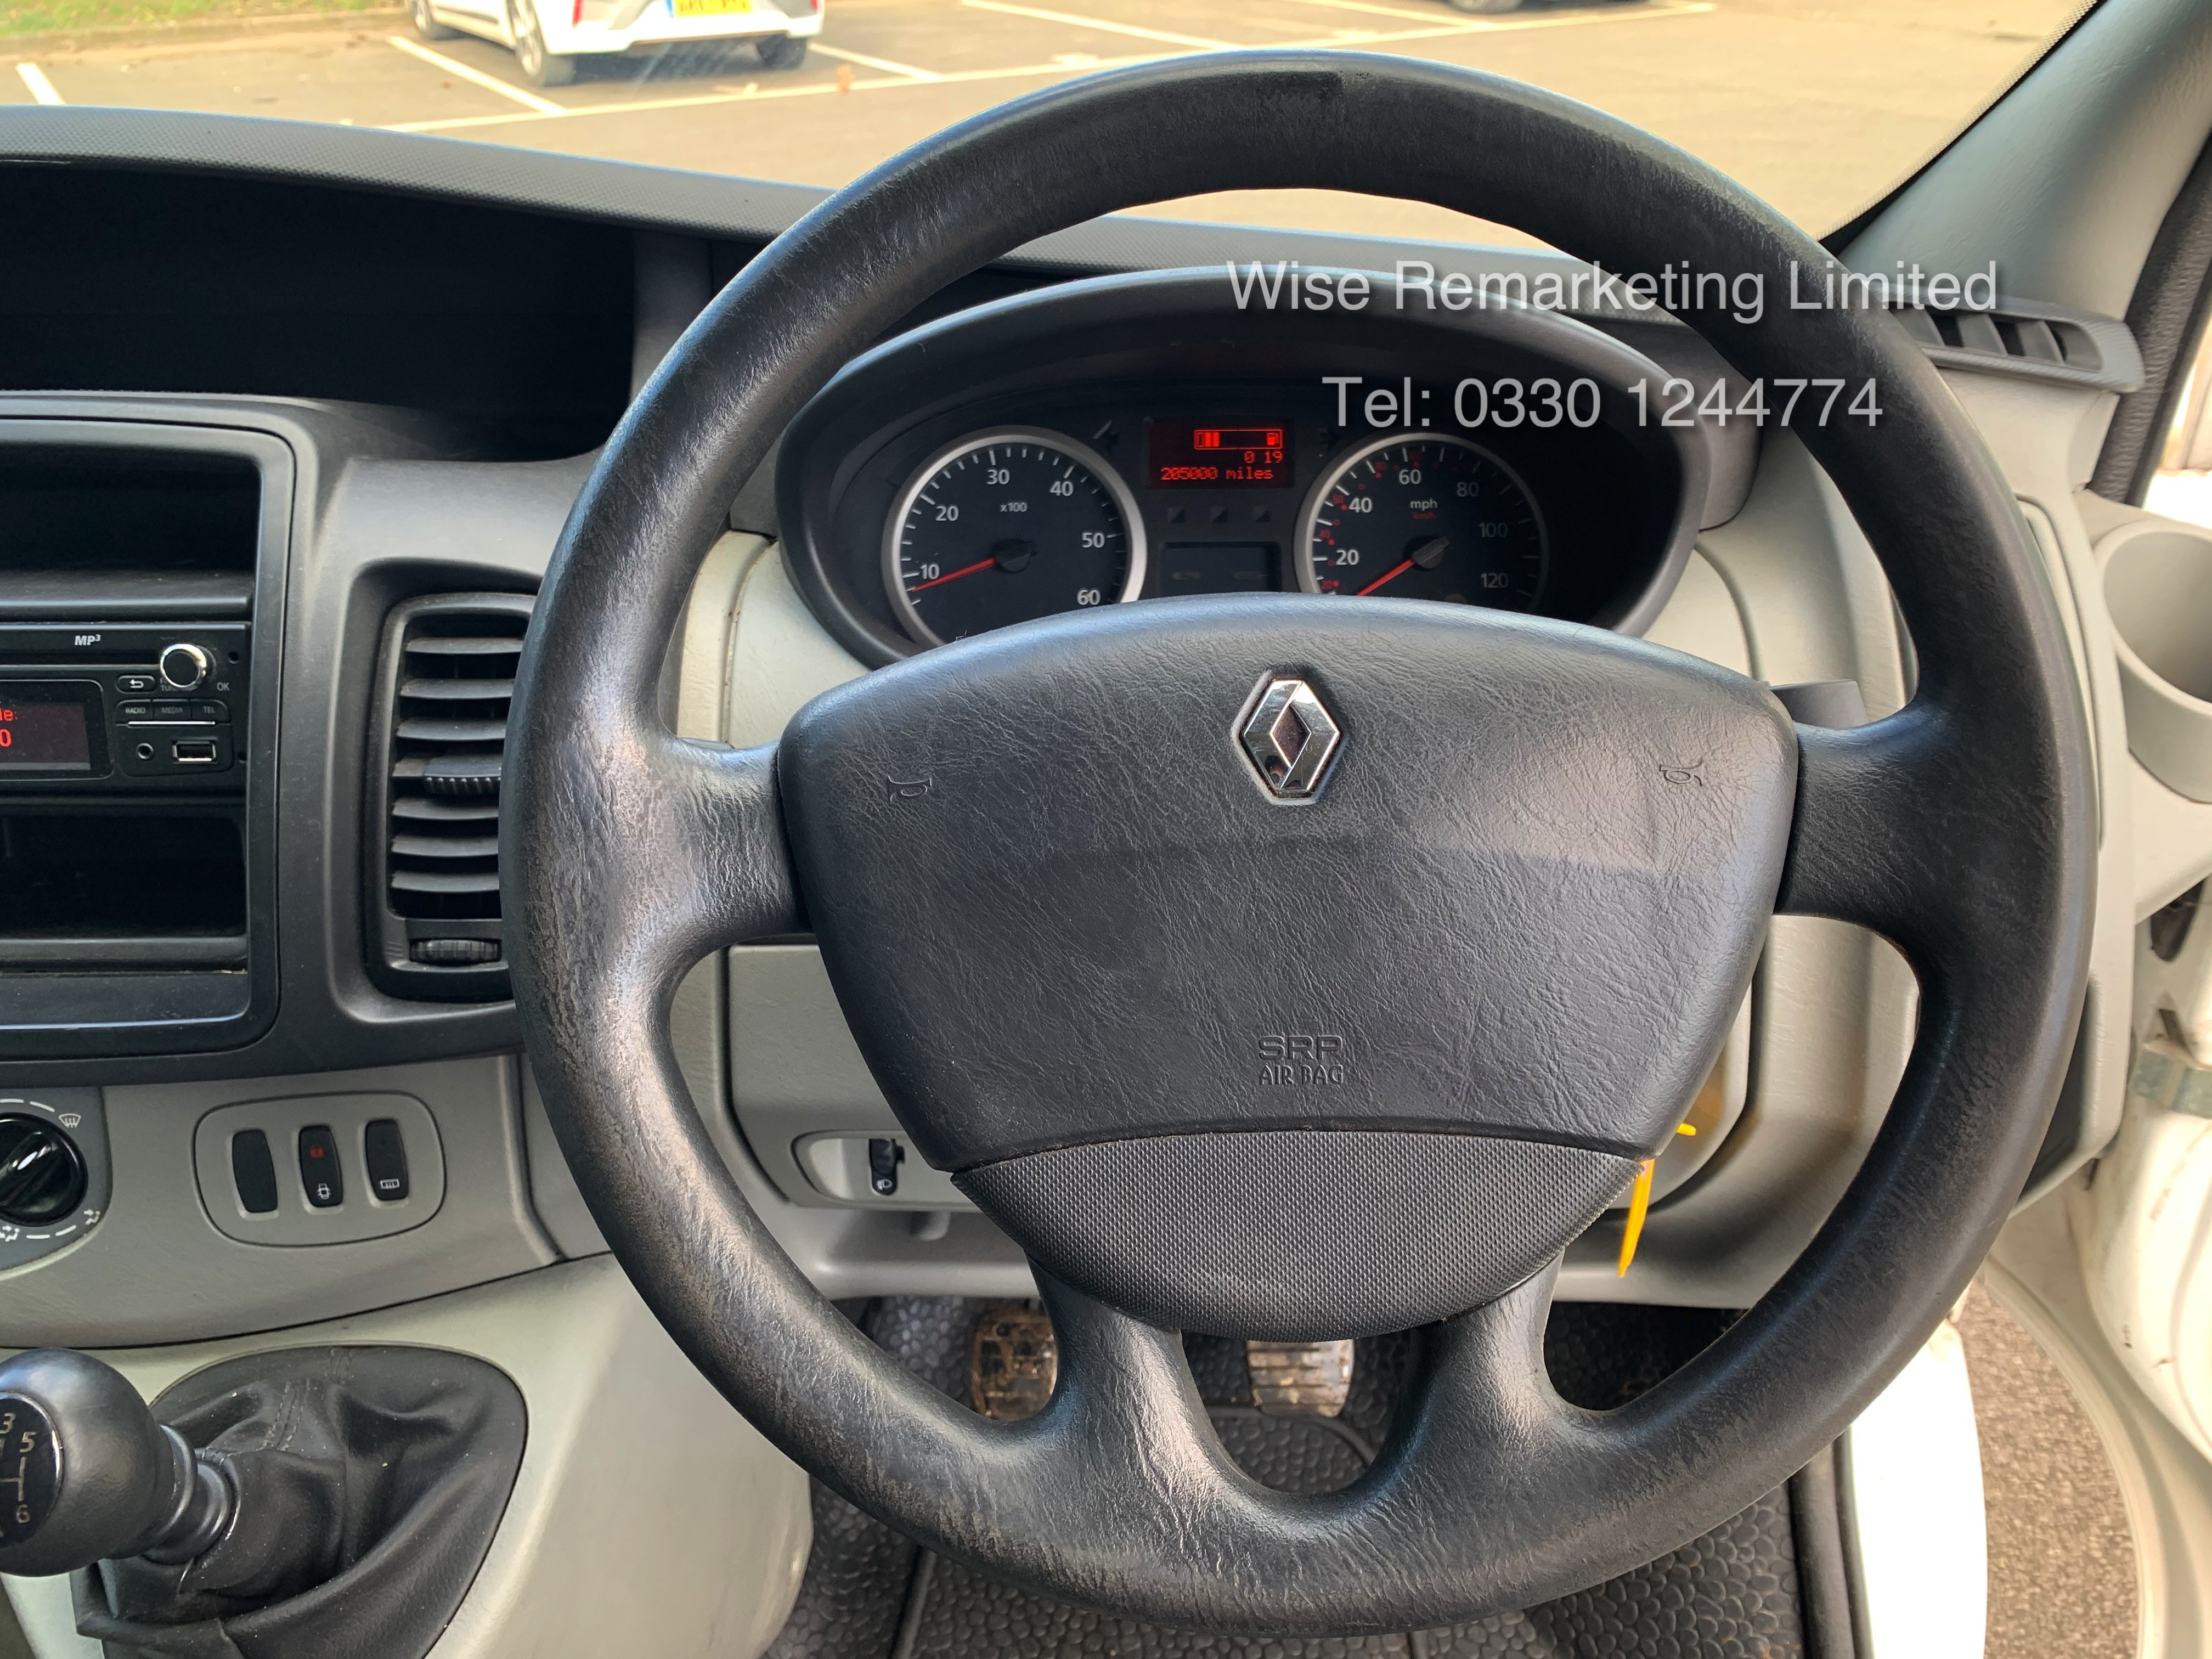 Renault Trafic 2.0 DCI (115 BHP) - 6 Speed - 2014 Reg - Ply Lined - - Image 19 of 21